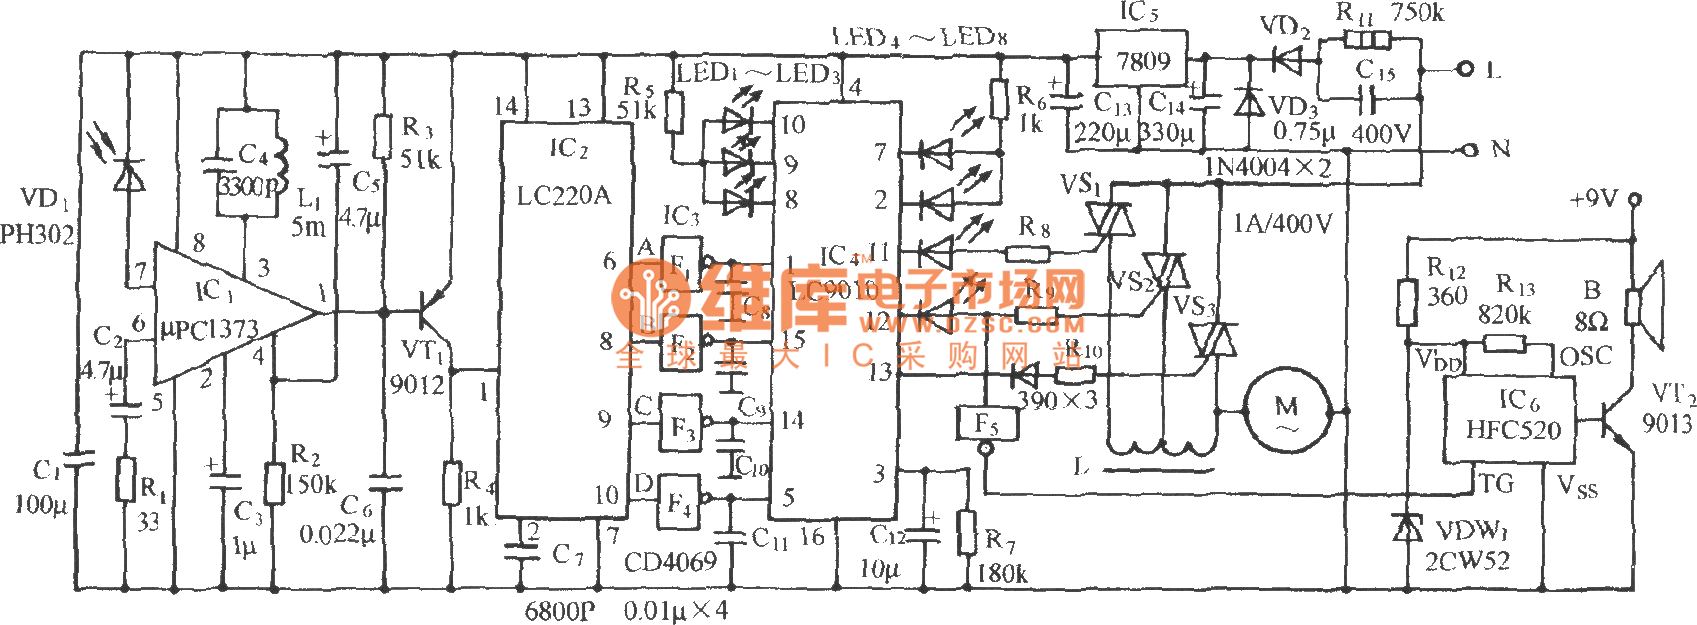 multifunction infrared remote control fan circuit lc219  lc220  - automotive circuit